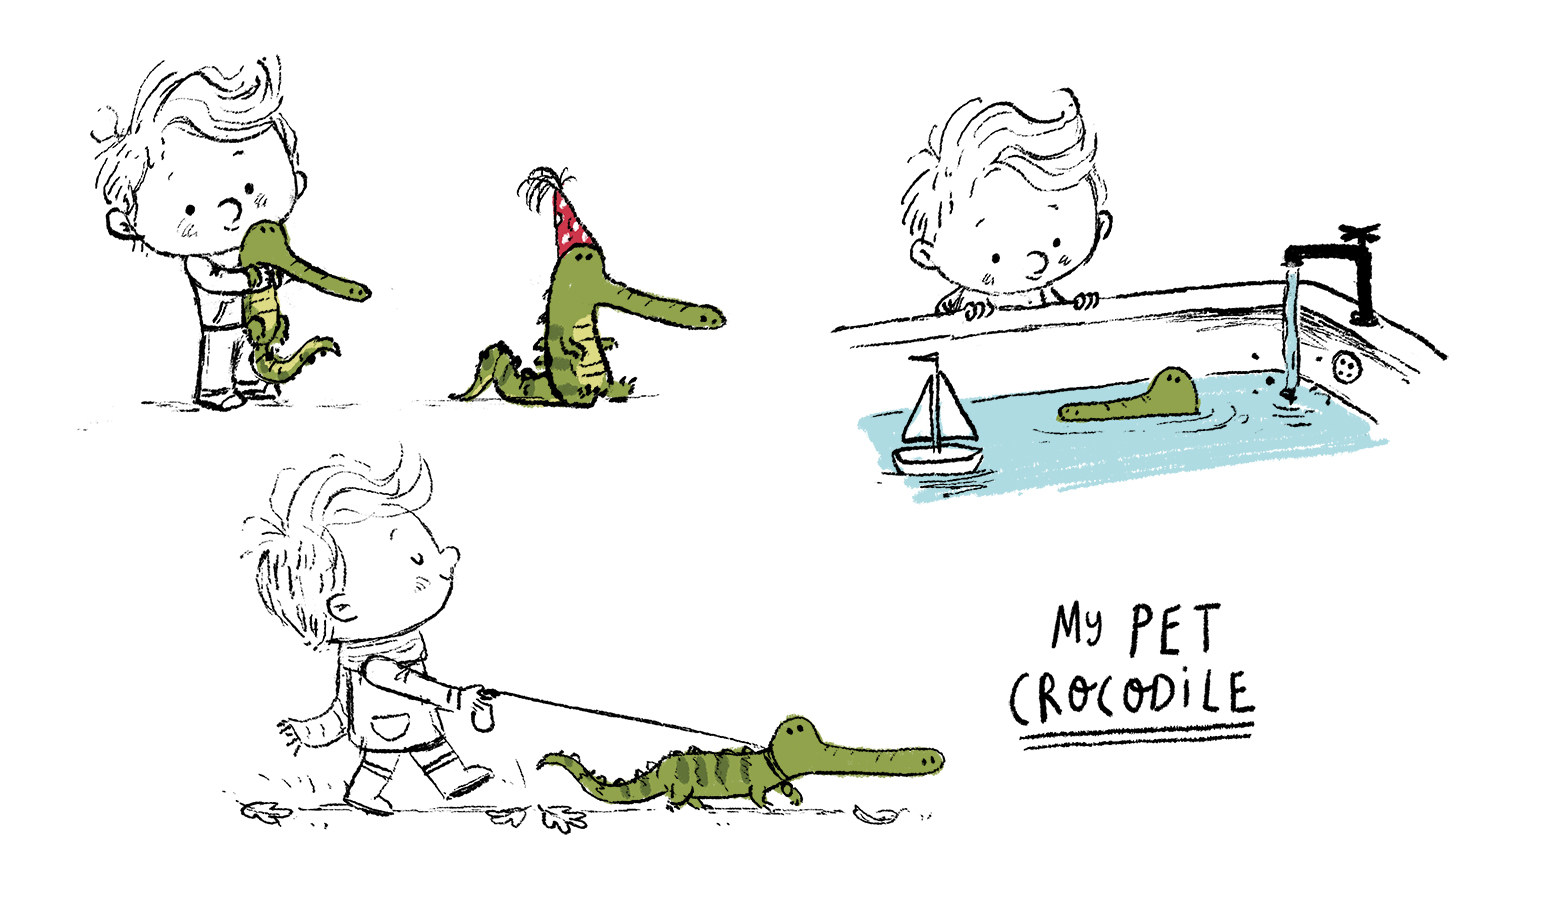 boy and crocodile sketch by Chris Chatterton